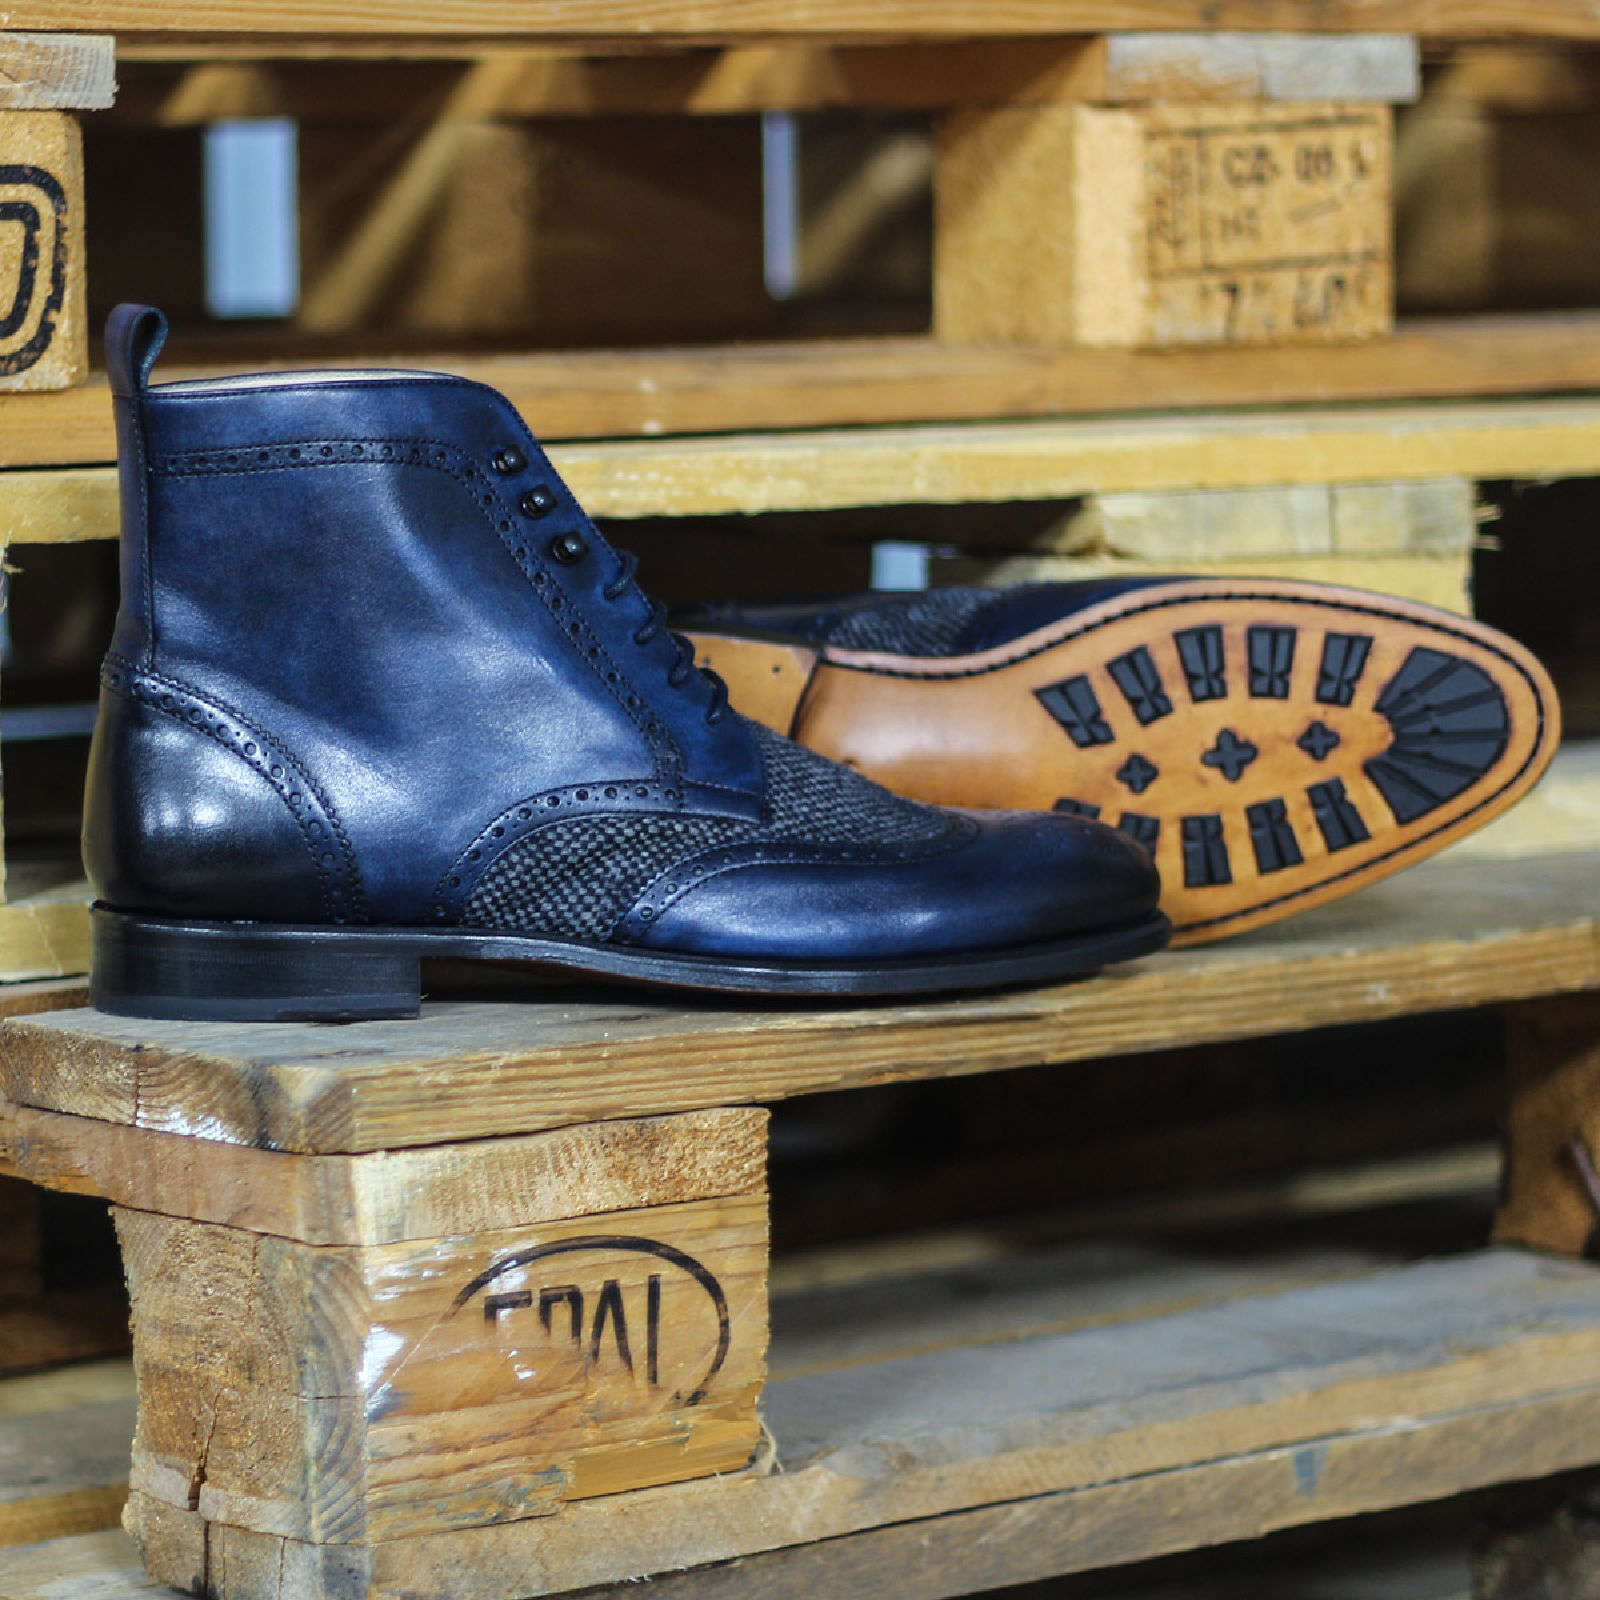 Military brogue nailhead sartorial + navy painted calf : 250€